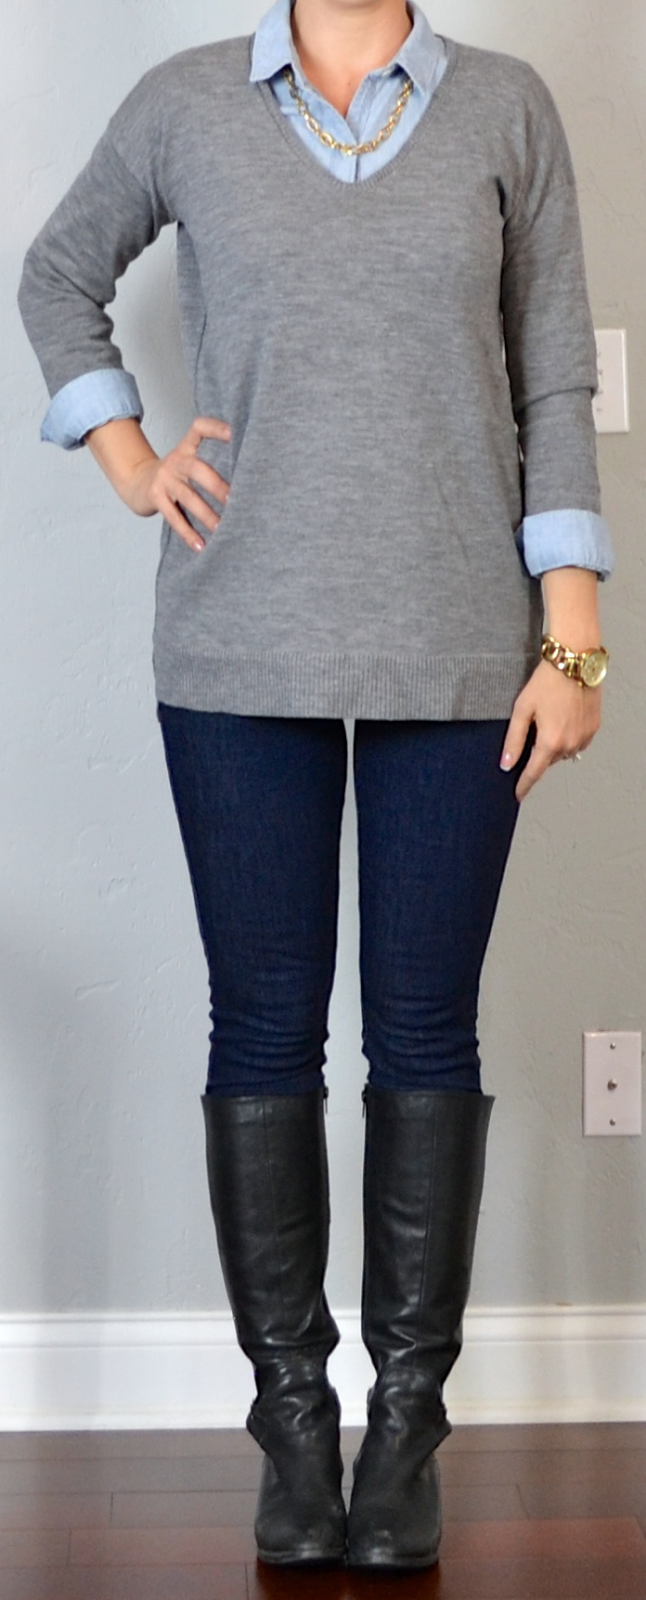 faf2108dc3 outfit post  grey tunic sweater